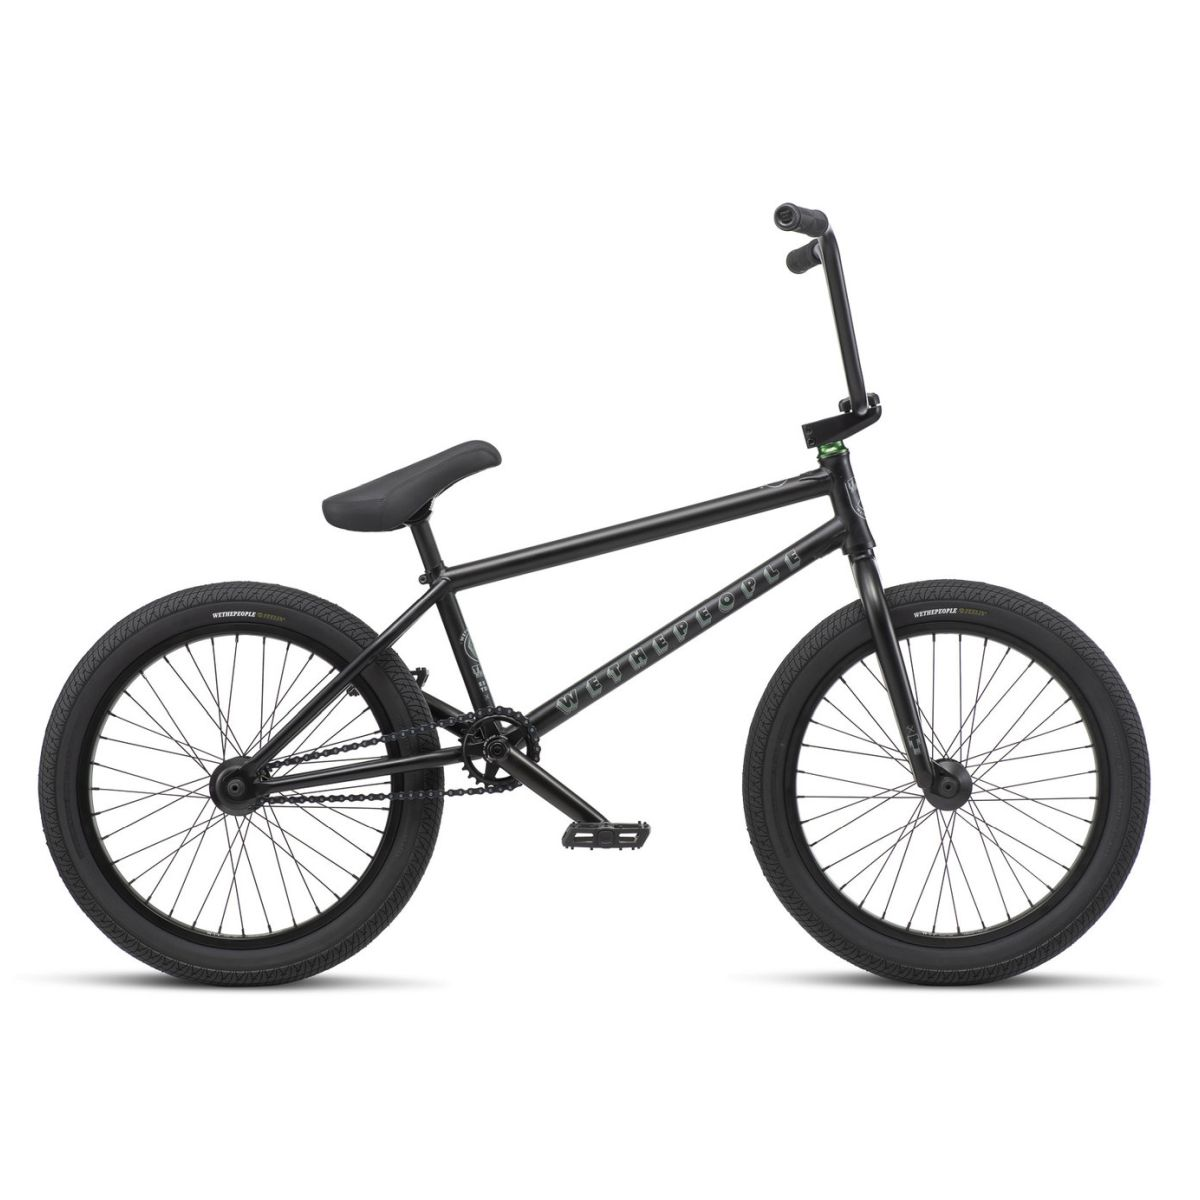 Rower BMX WTP Trust 9 Matt Black Freecoaster